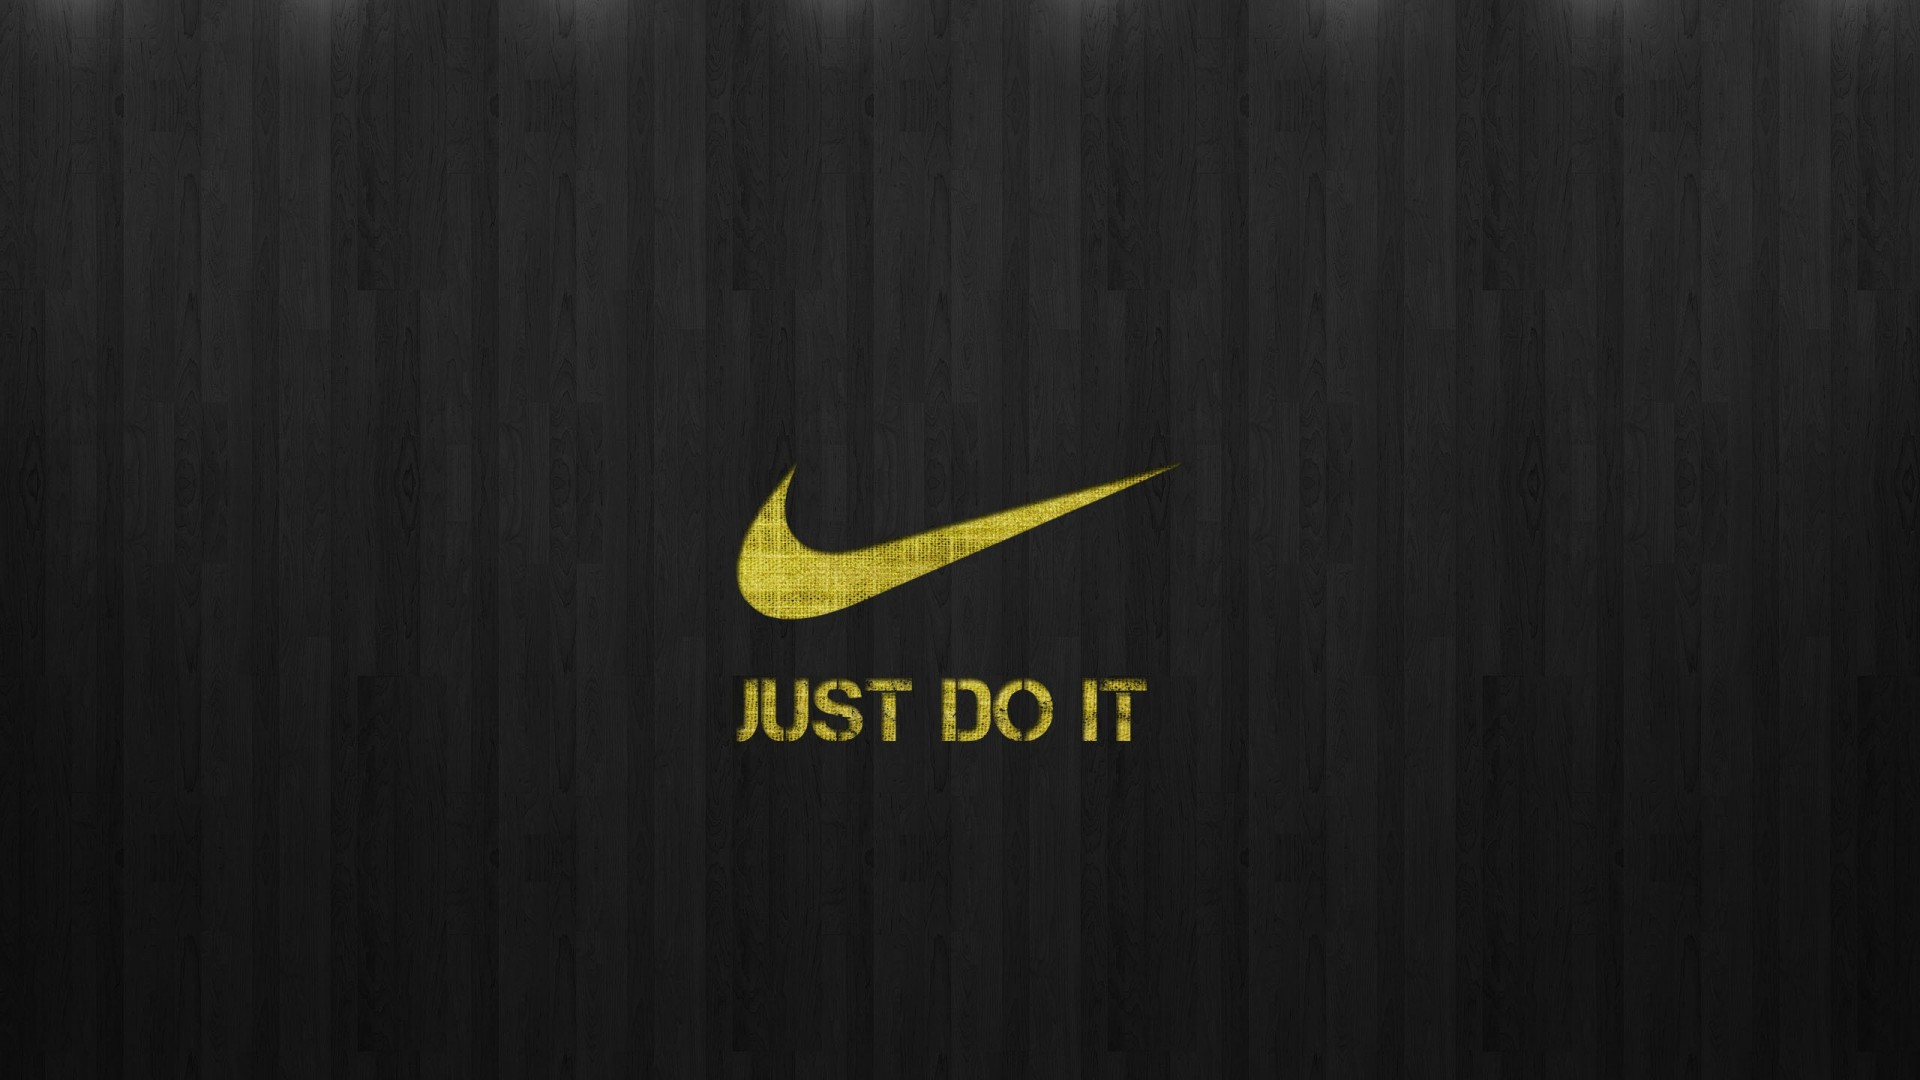 Nike Just Do It wallpaper | 1920x1080 | #71349